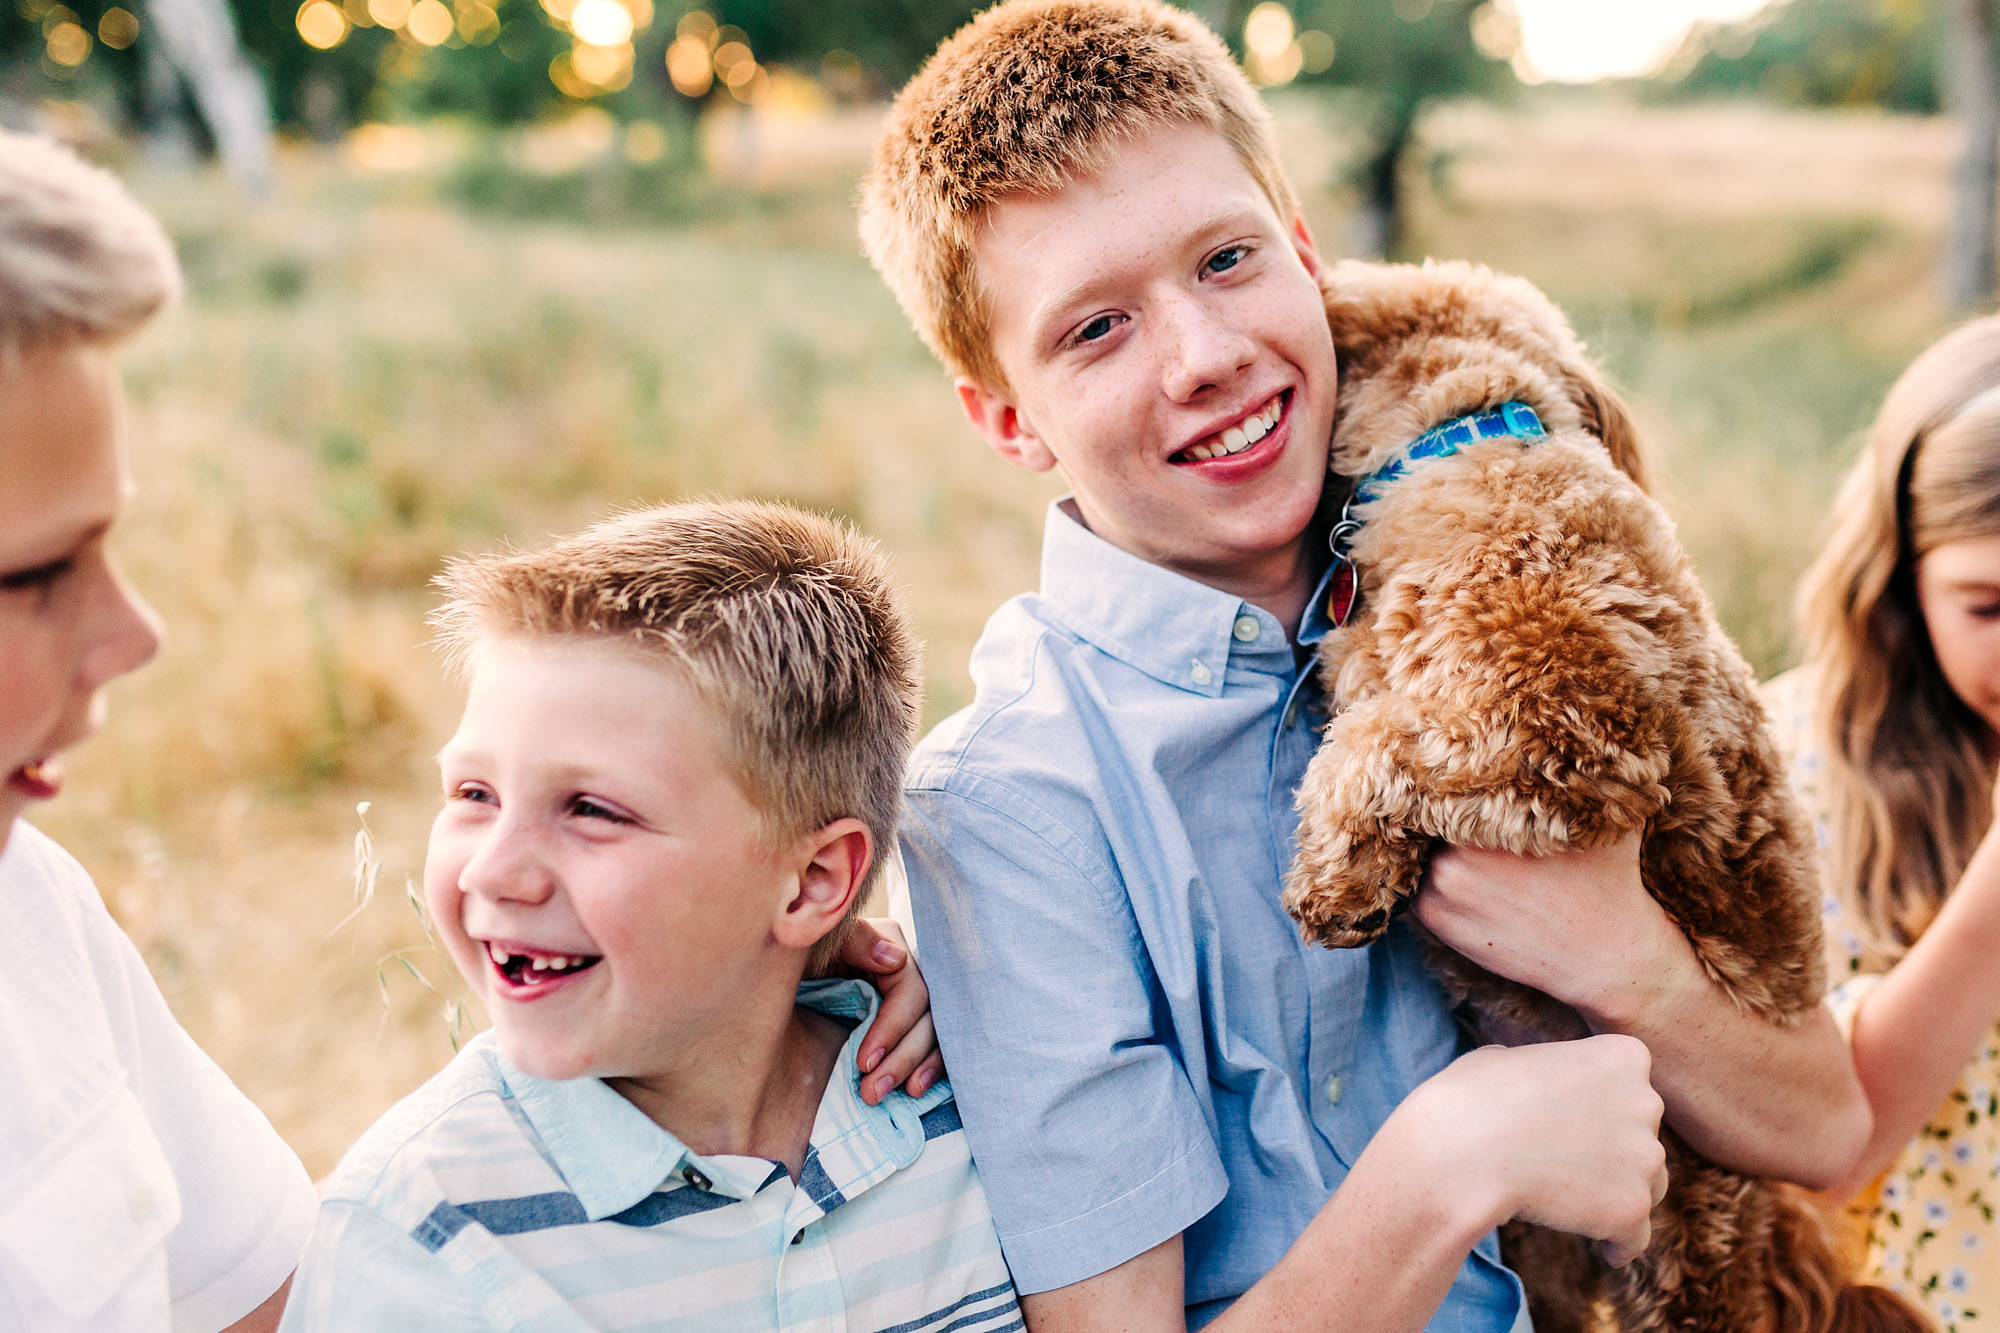 A candid moment is captured during a lifestyle photo session with Roseville family photographer Amy Wright.